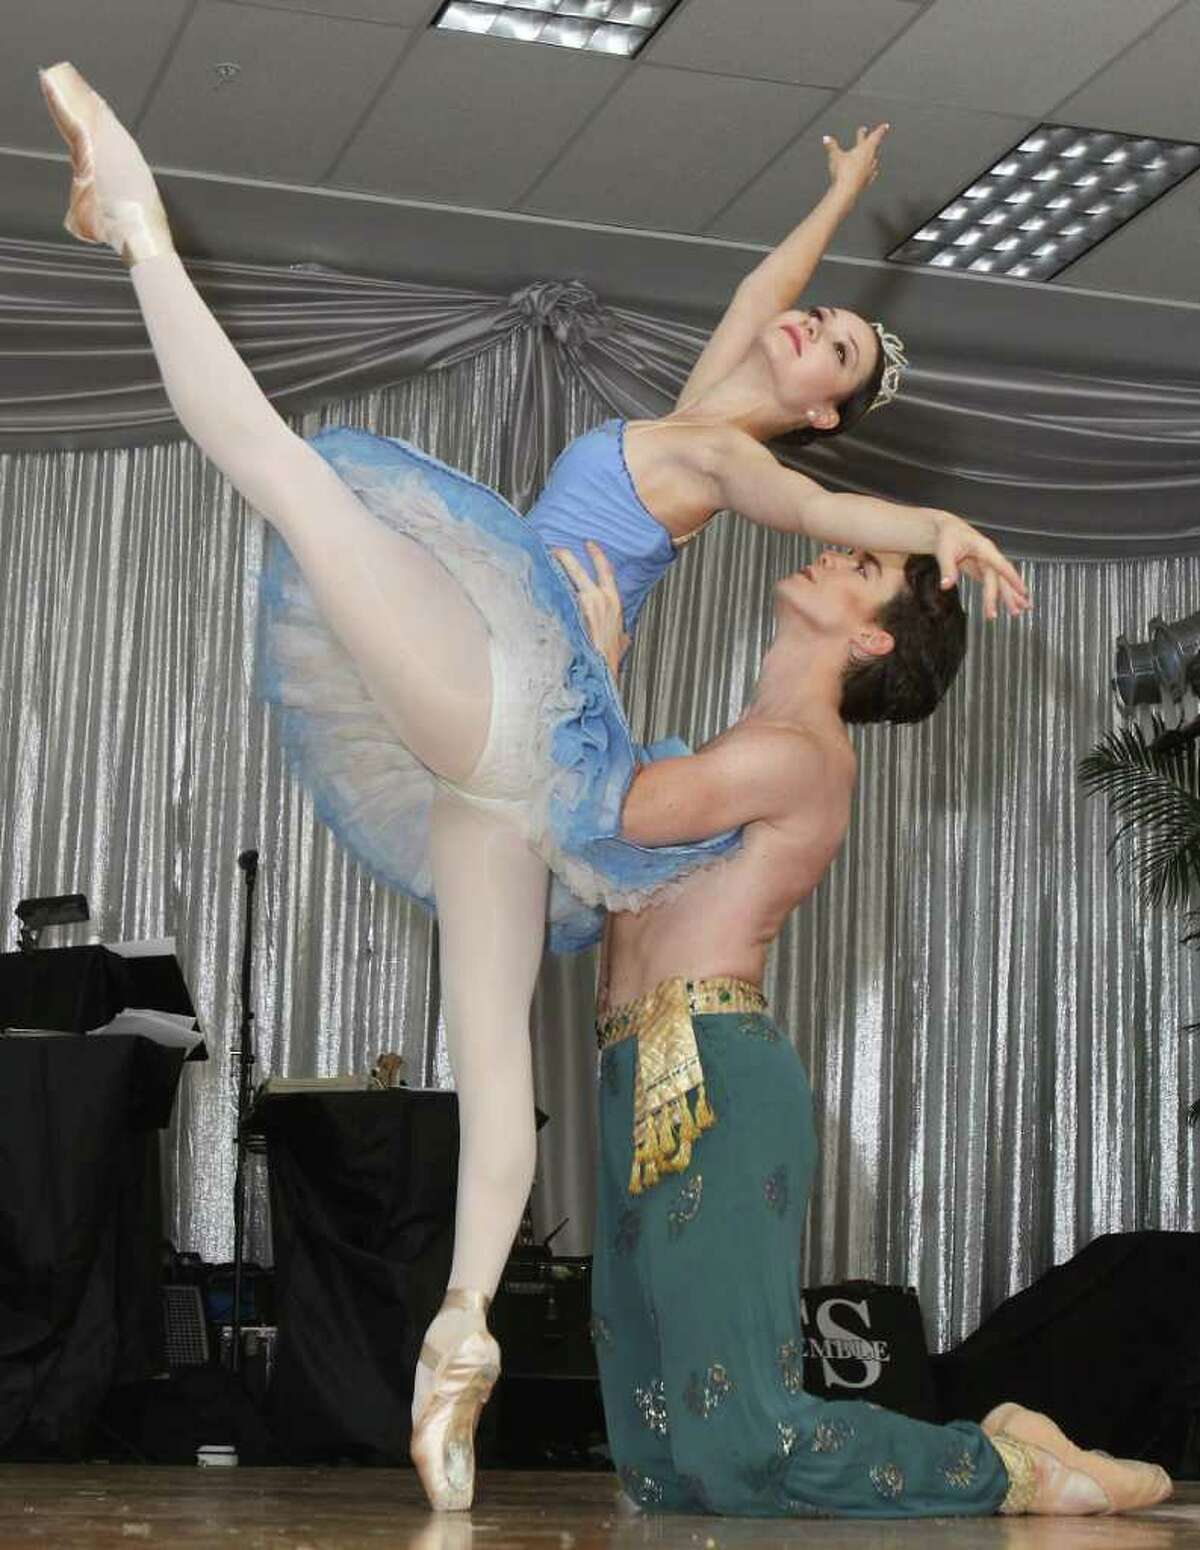 Saratoga Springs, NY - August 6, 2011 - (Photo by Joe Putrock/Special to the Times Union) - American Ballet Theatre dancers Christine Shevchenko(left) and Gray Davis(right) performed during the National Museum of Dance Silver Anniversary Gala.